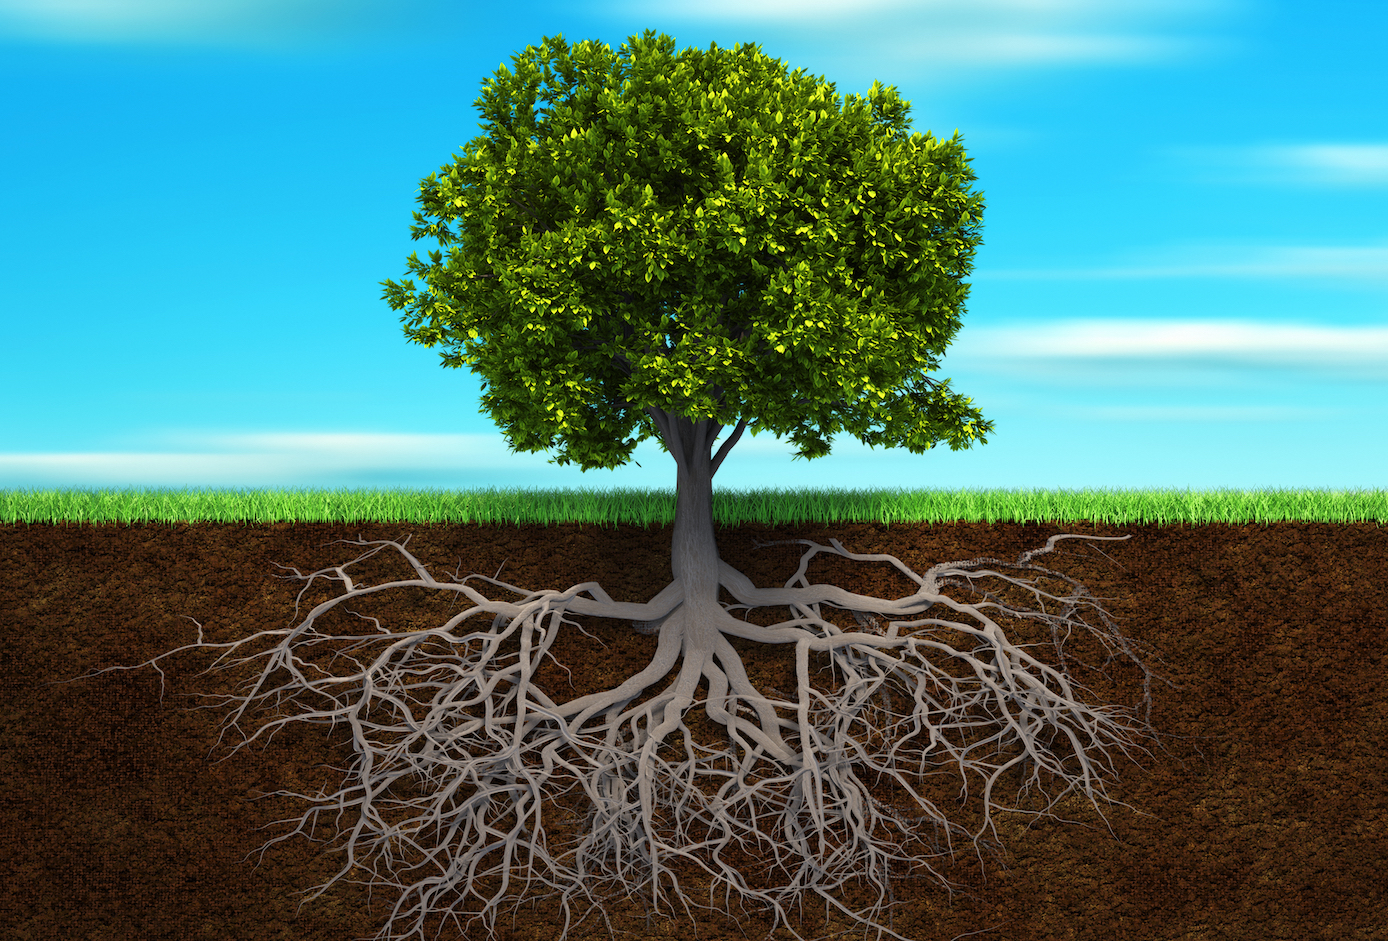 Experts propose that plants adapted their roots underground as they evolved to make themselves more efficient and independent.